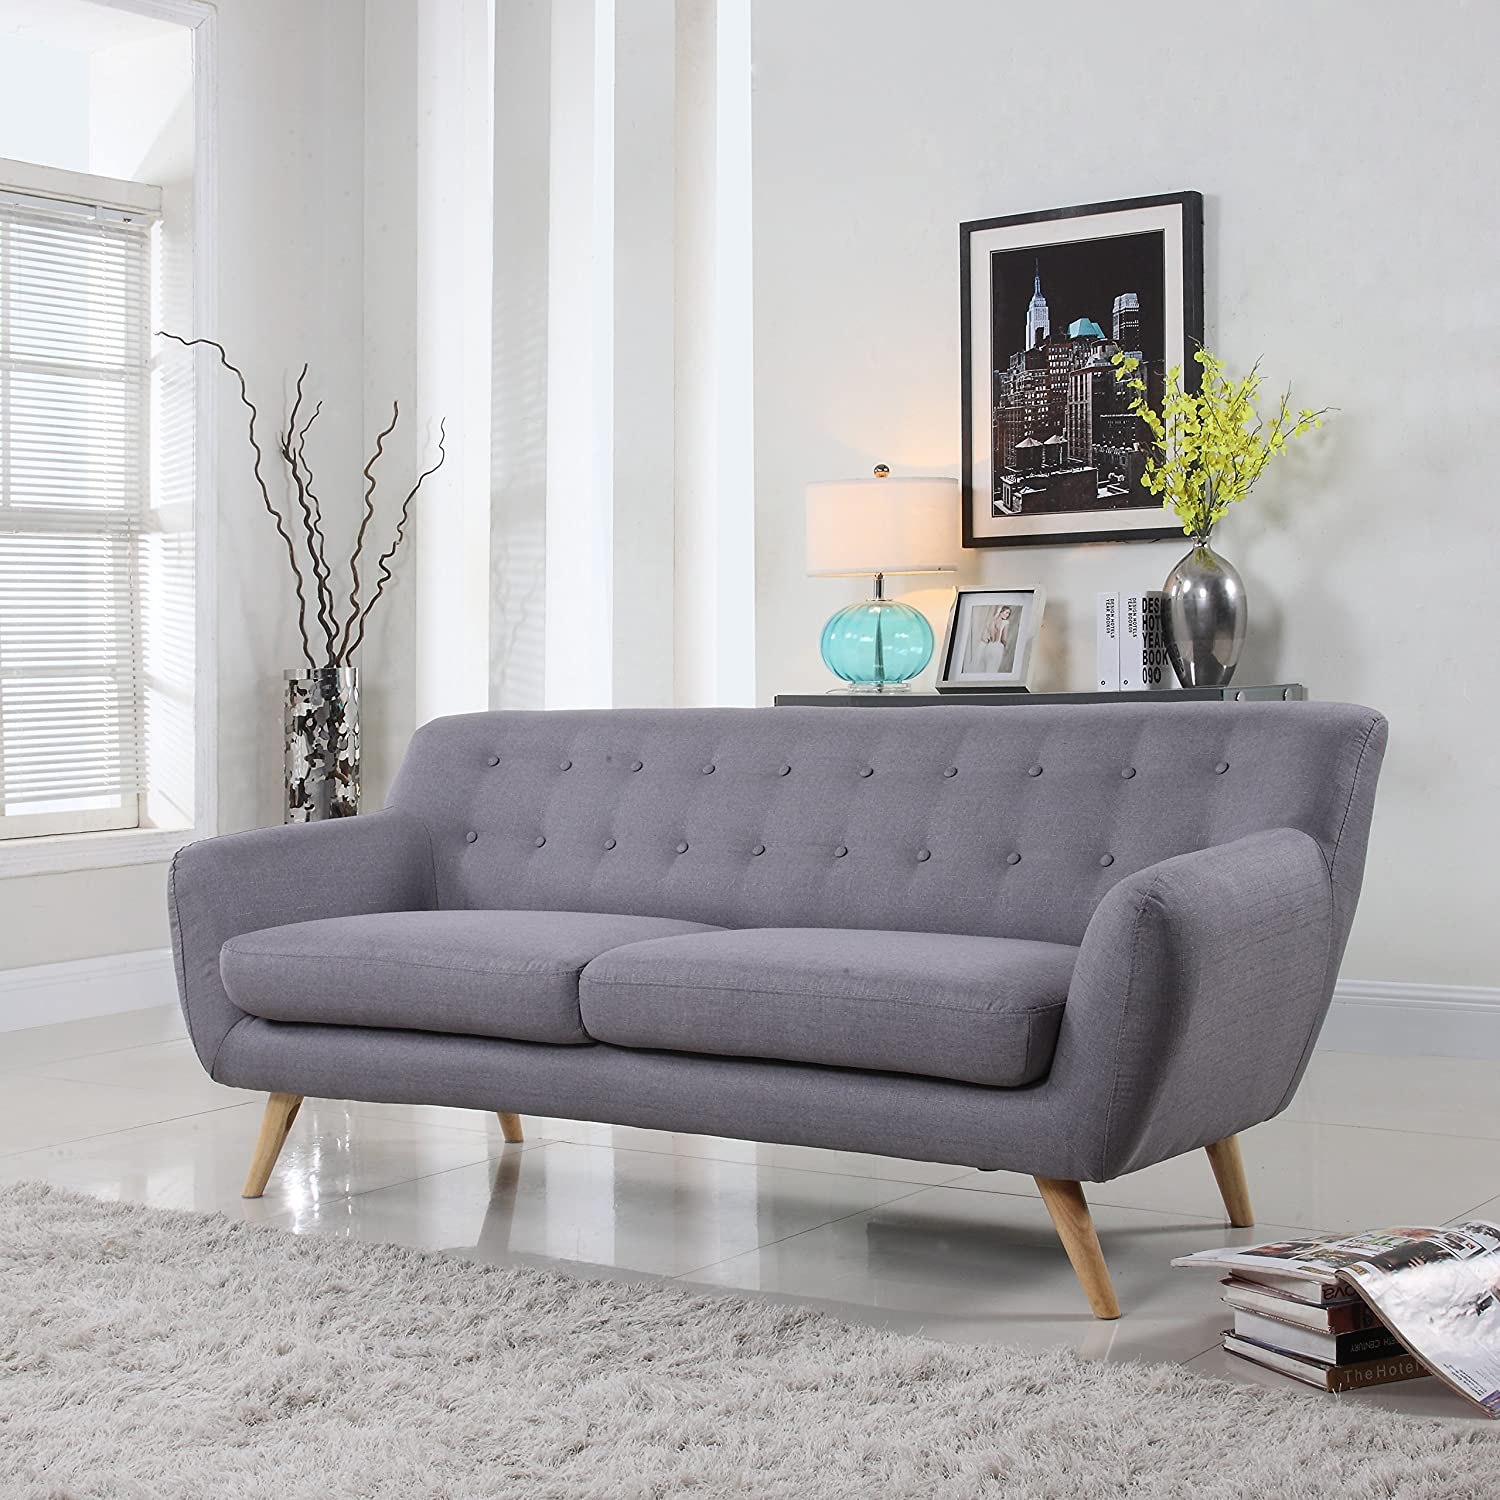 Mid-Century Modern Linen Fabric Sofa, Loveseat in Colors Light Grey